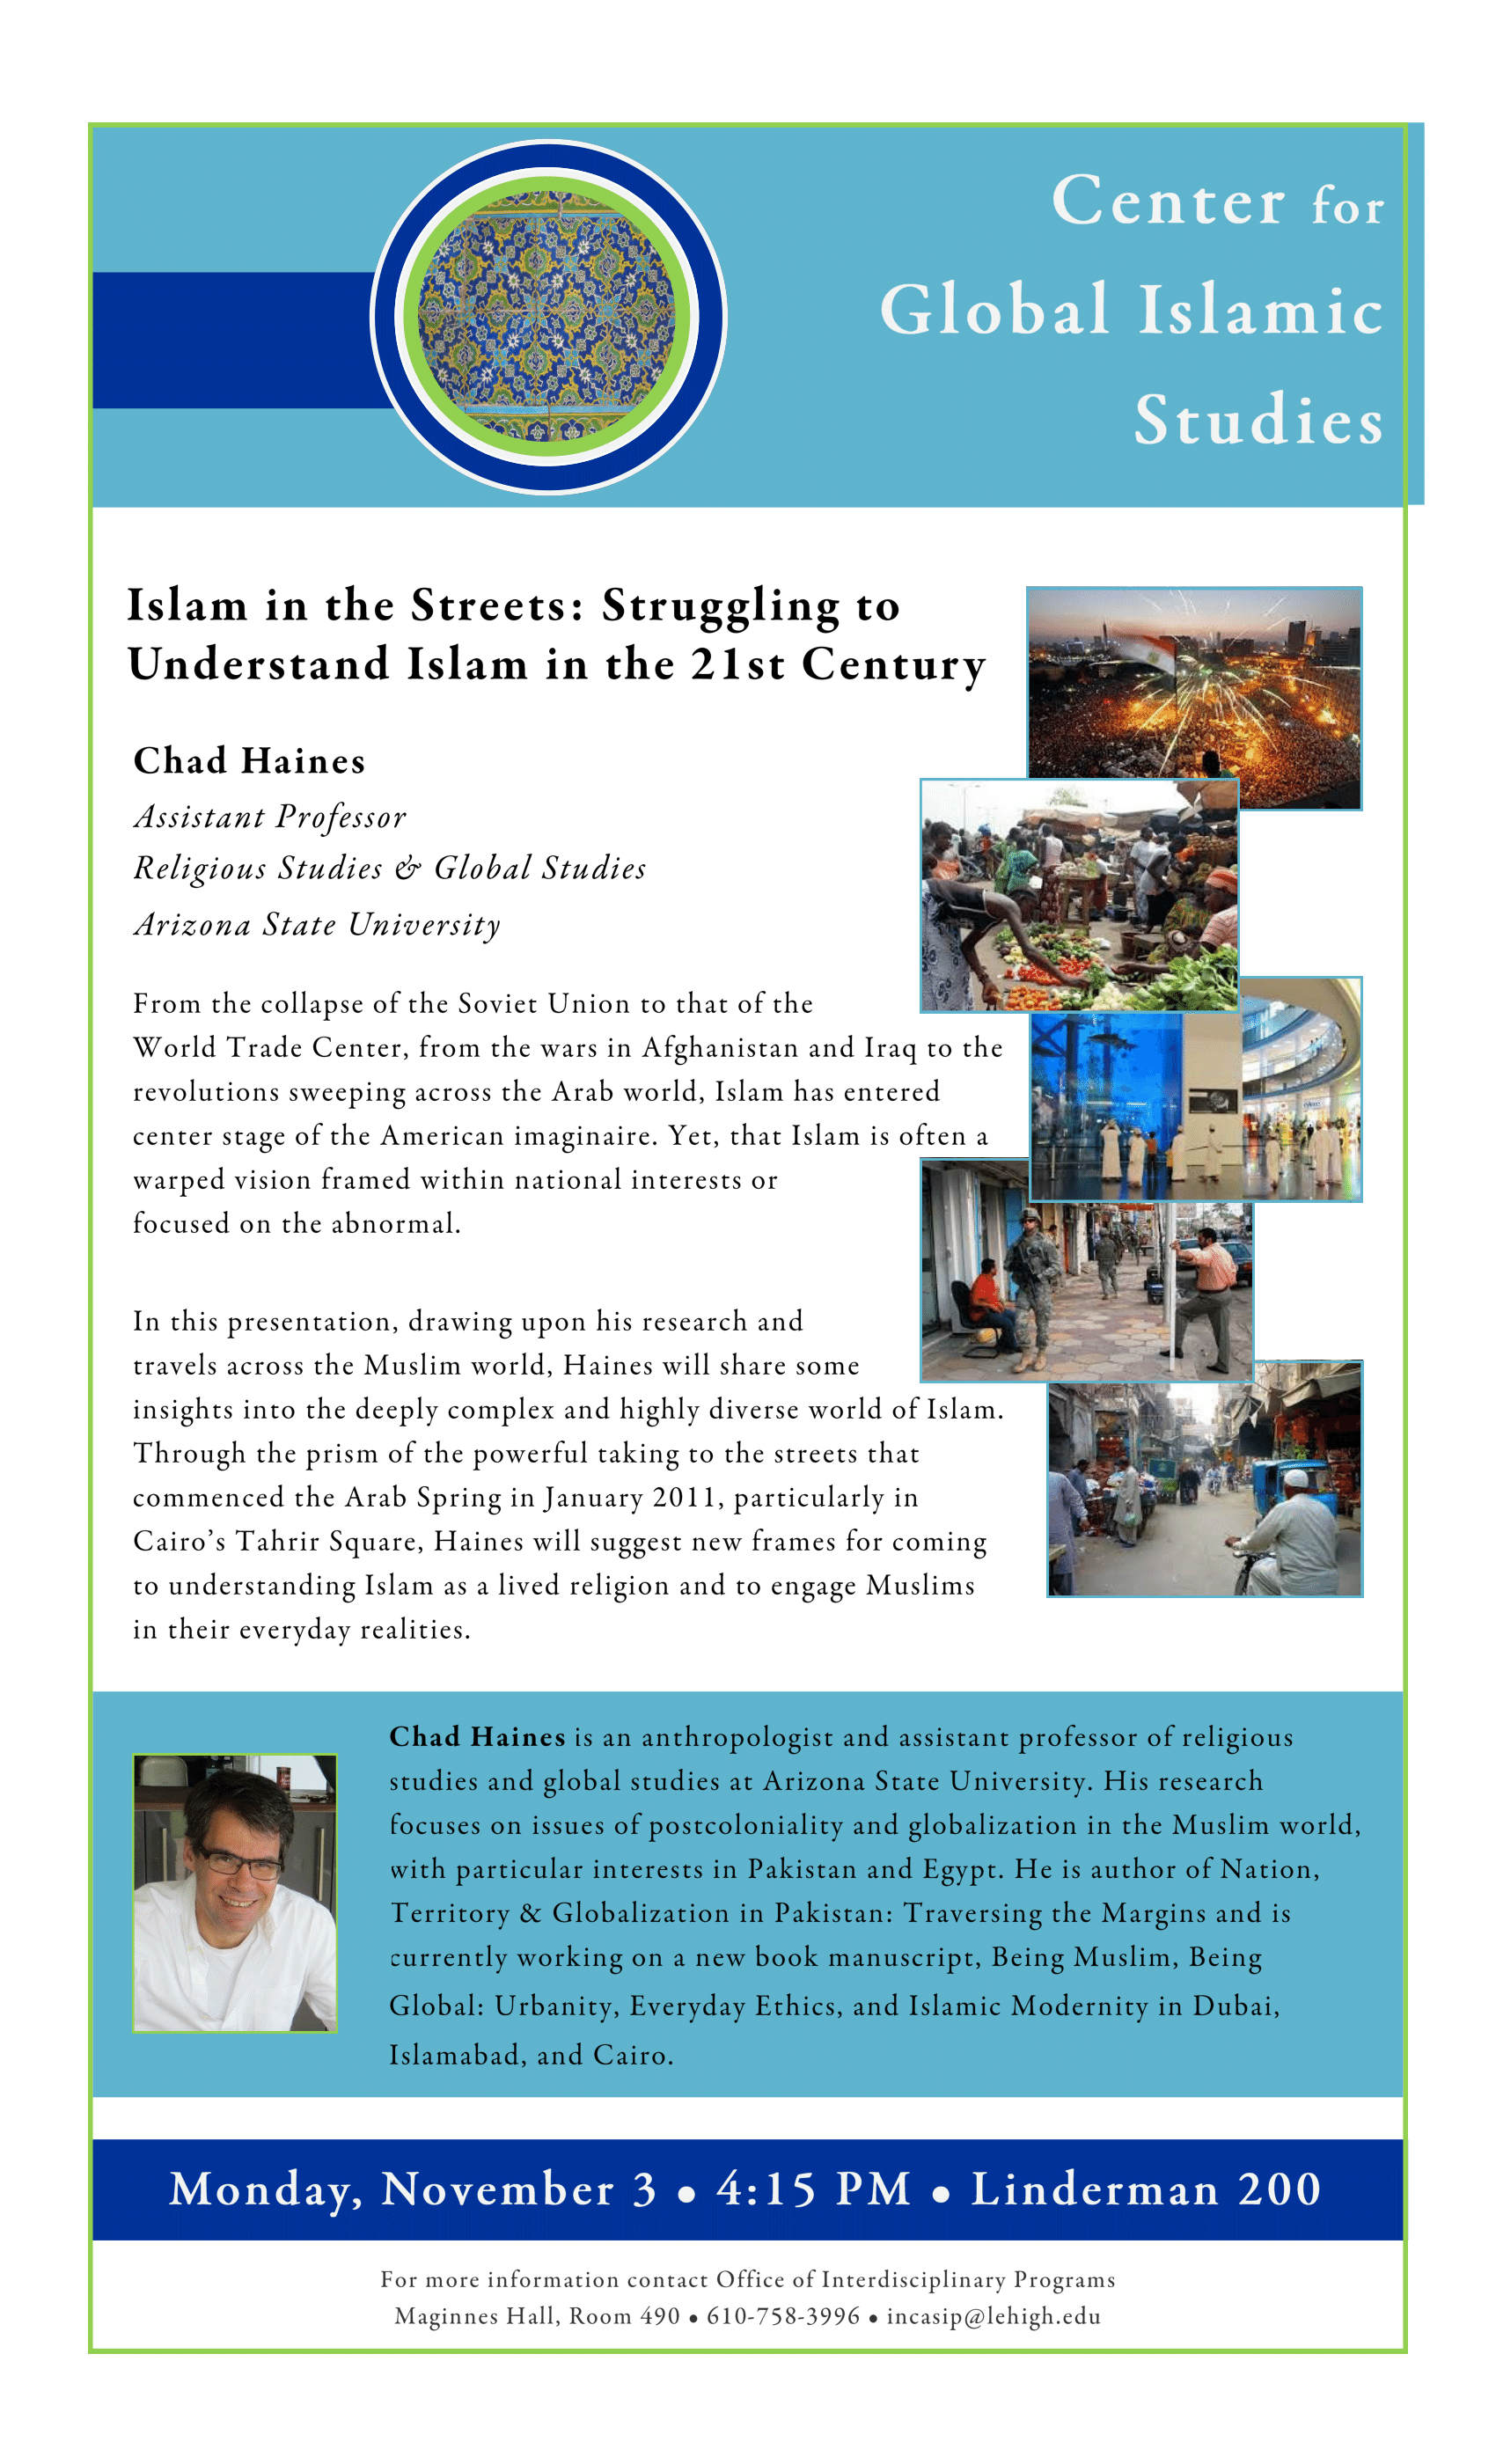 Lehigh University - Global Center for Islamic Studies - Islam in the Streets - Chad Haines